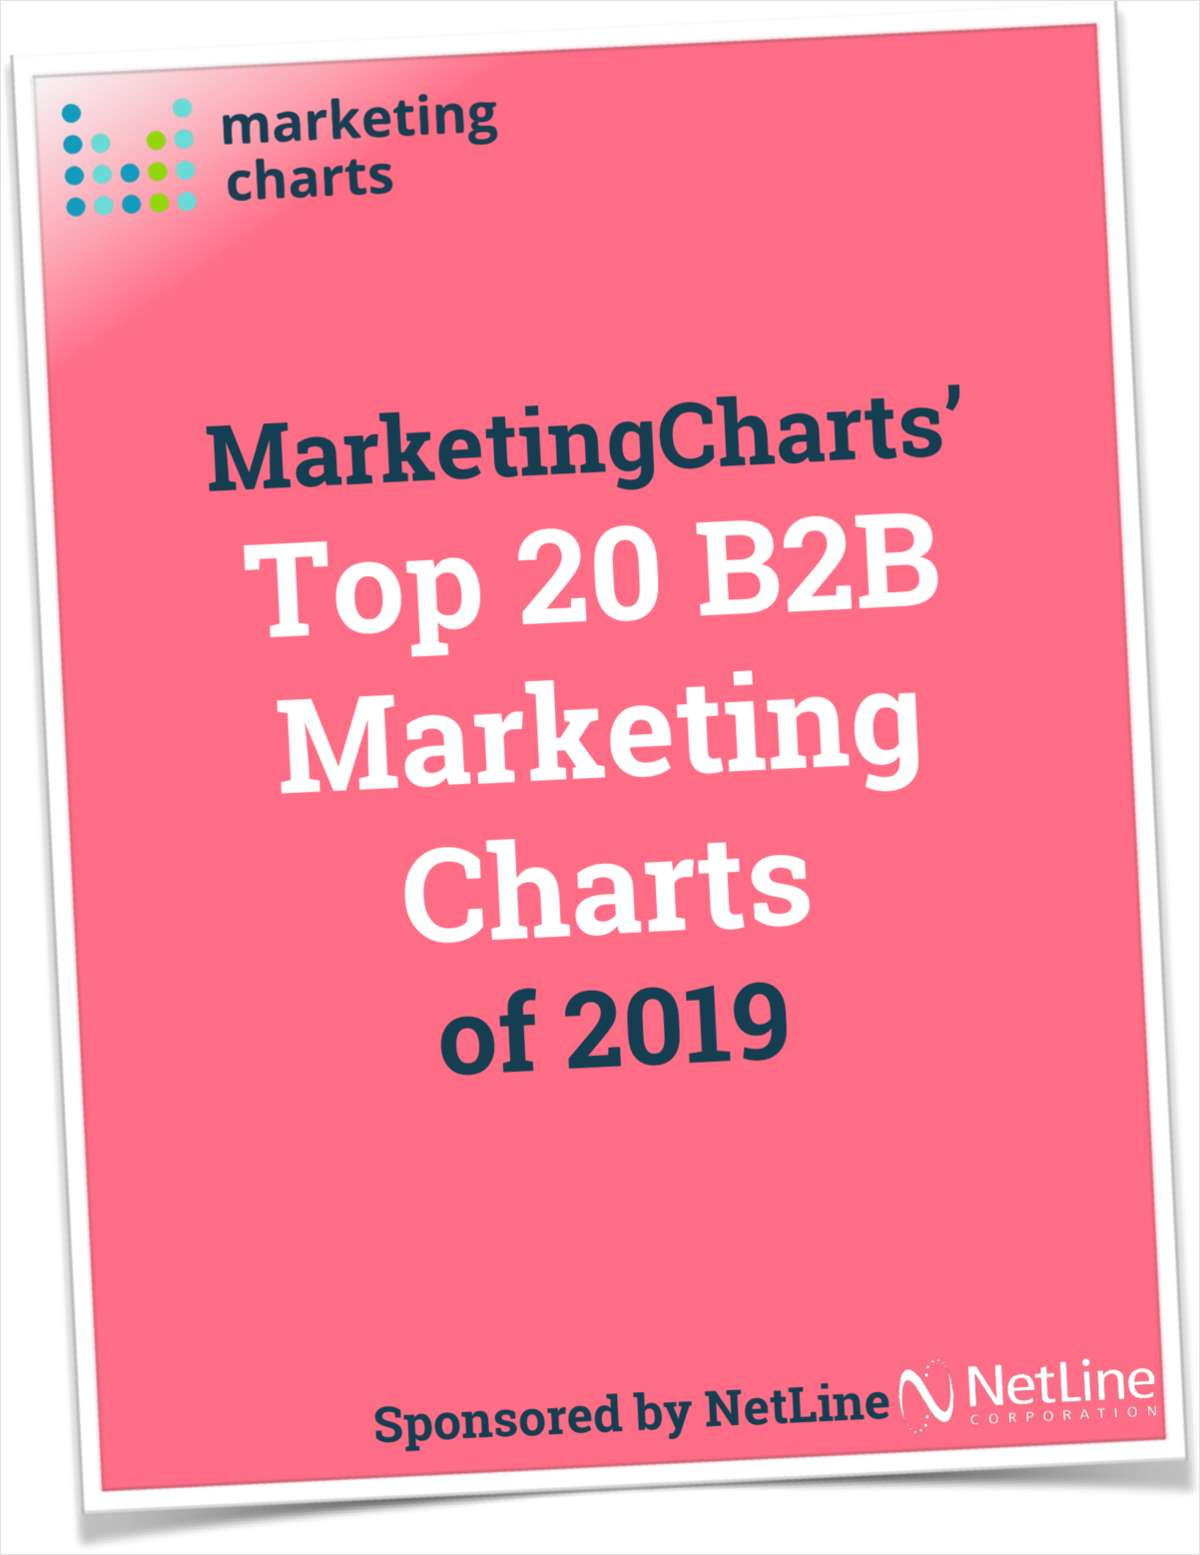 Top 20 B2B Marketing Charts of 2018